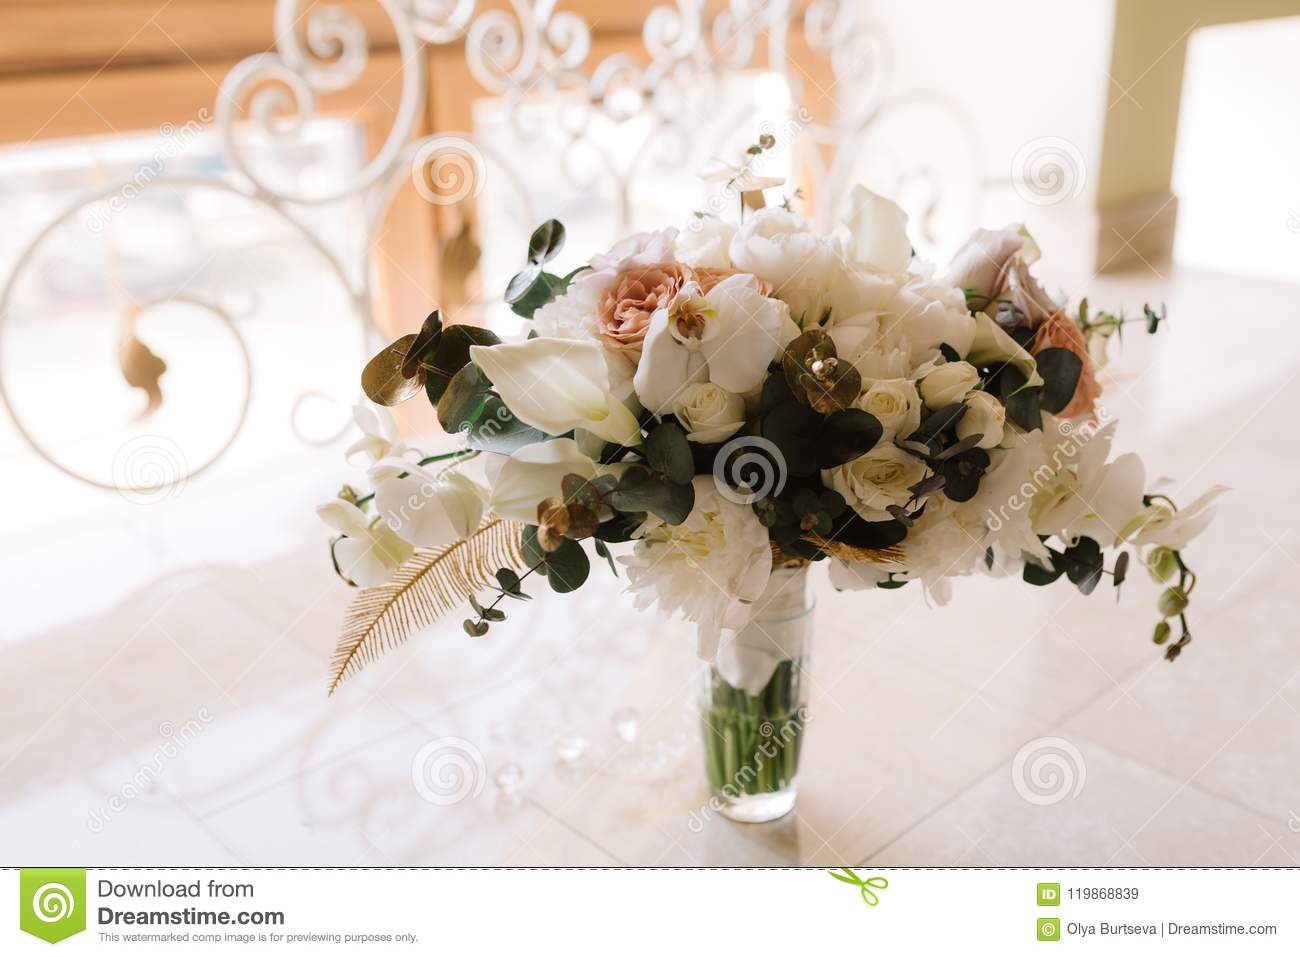 Bridal bouquet from gentle details and fresh flowers stock image bridal bouquet from gentle details and fresh flowers a wedding bouquet from natural materials and flowers izmirmasajfo